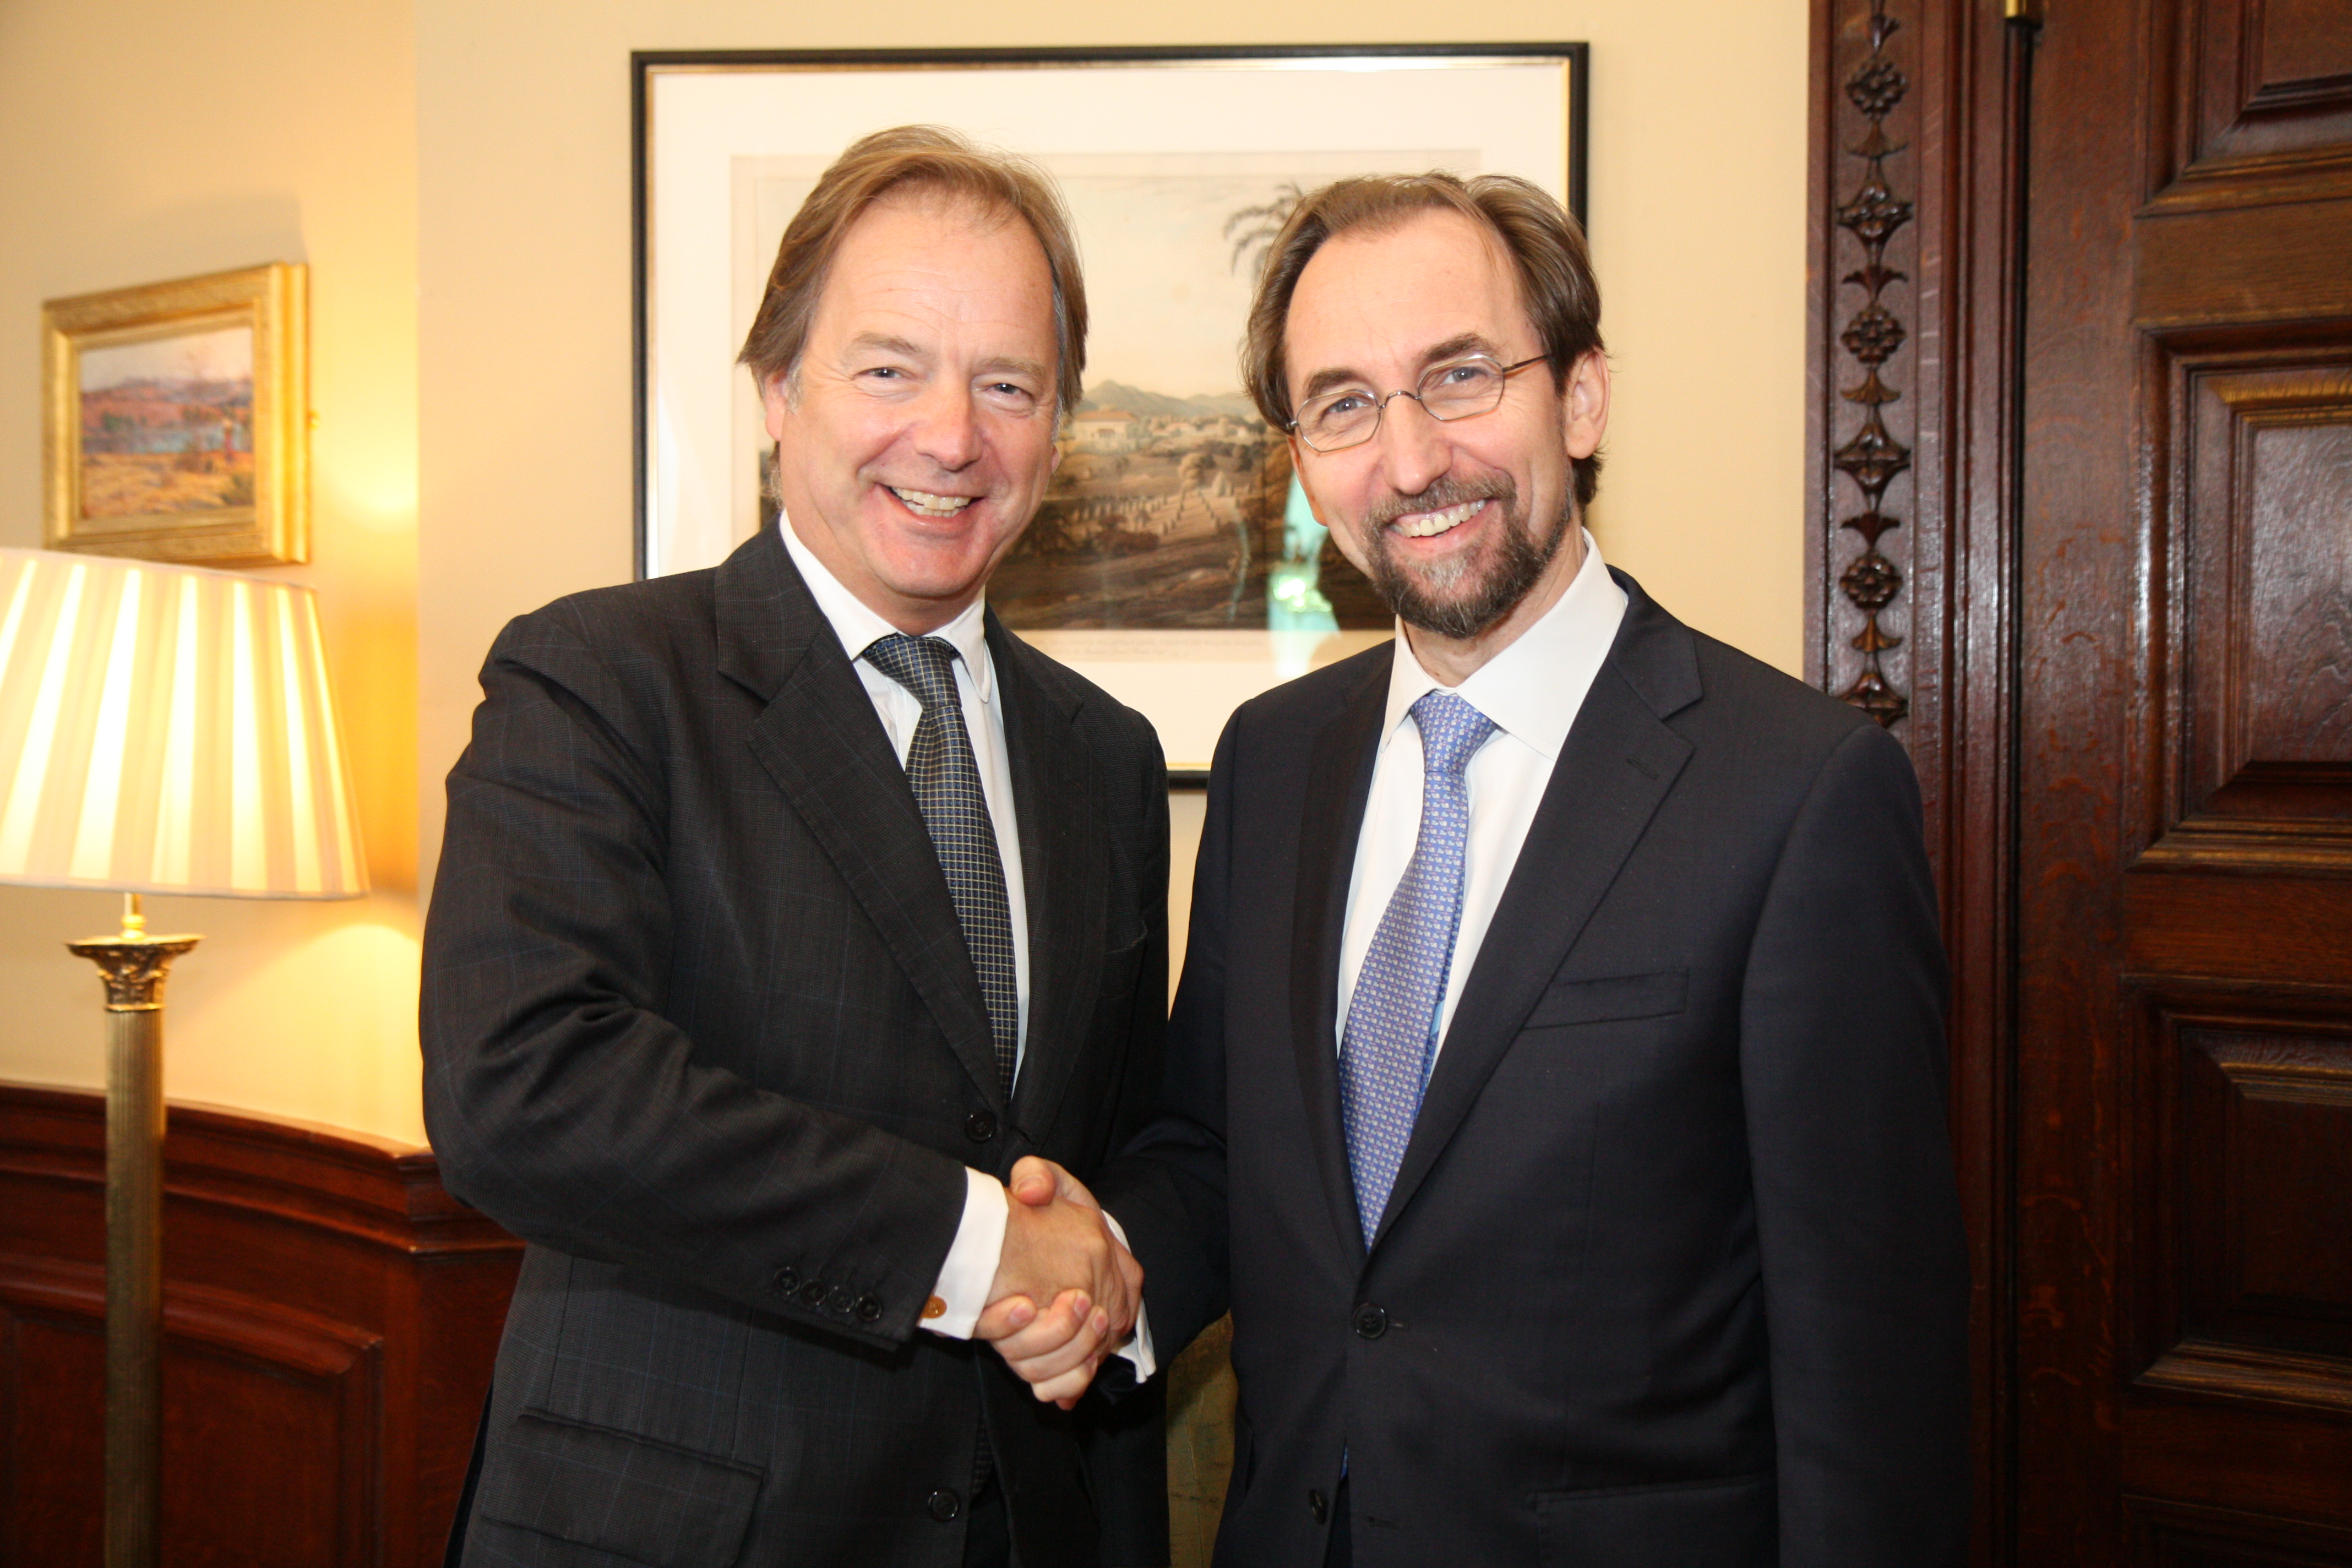 Archivo united nations high commissioner for human rights - Office for the high commissioner for human rights ...